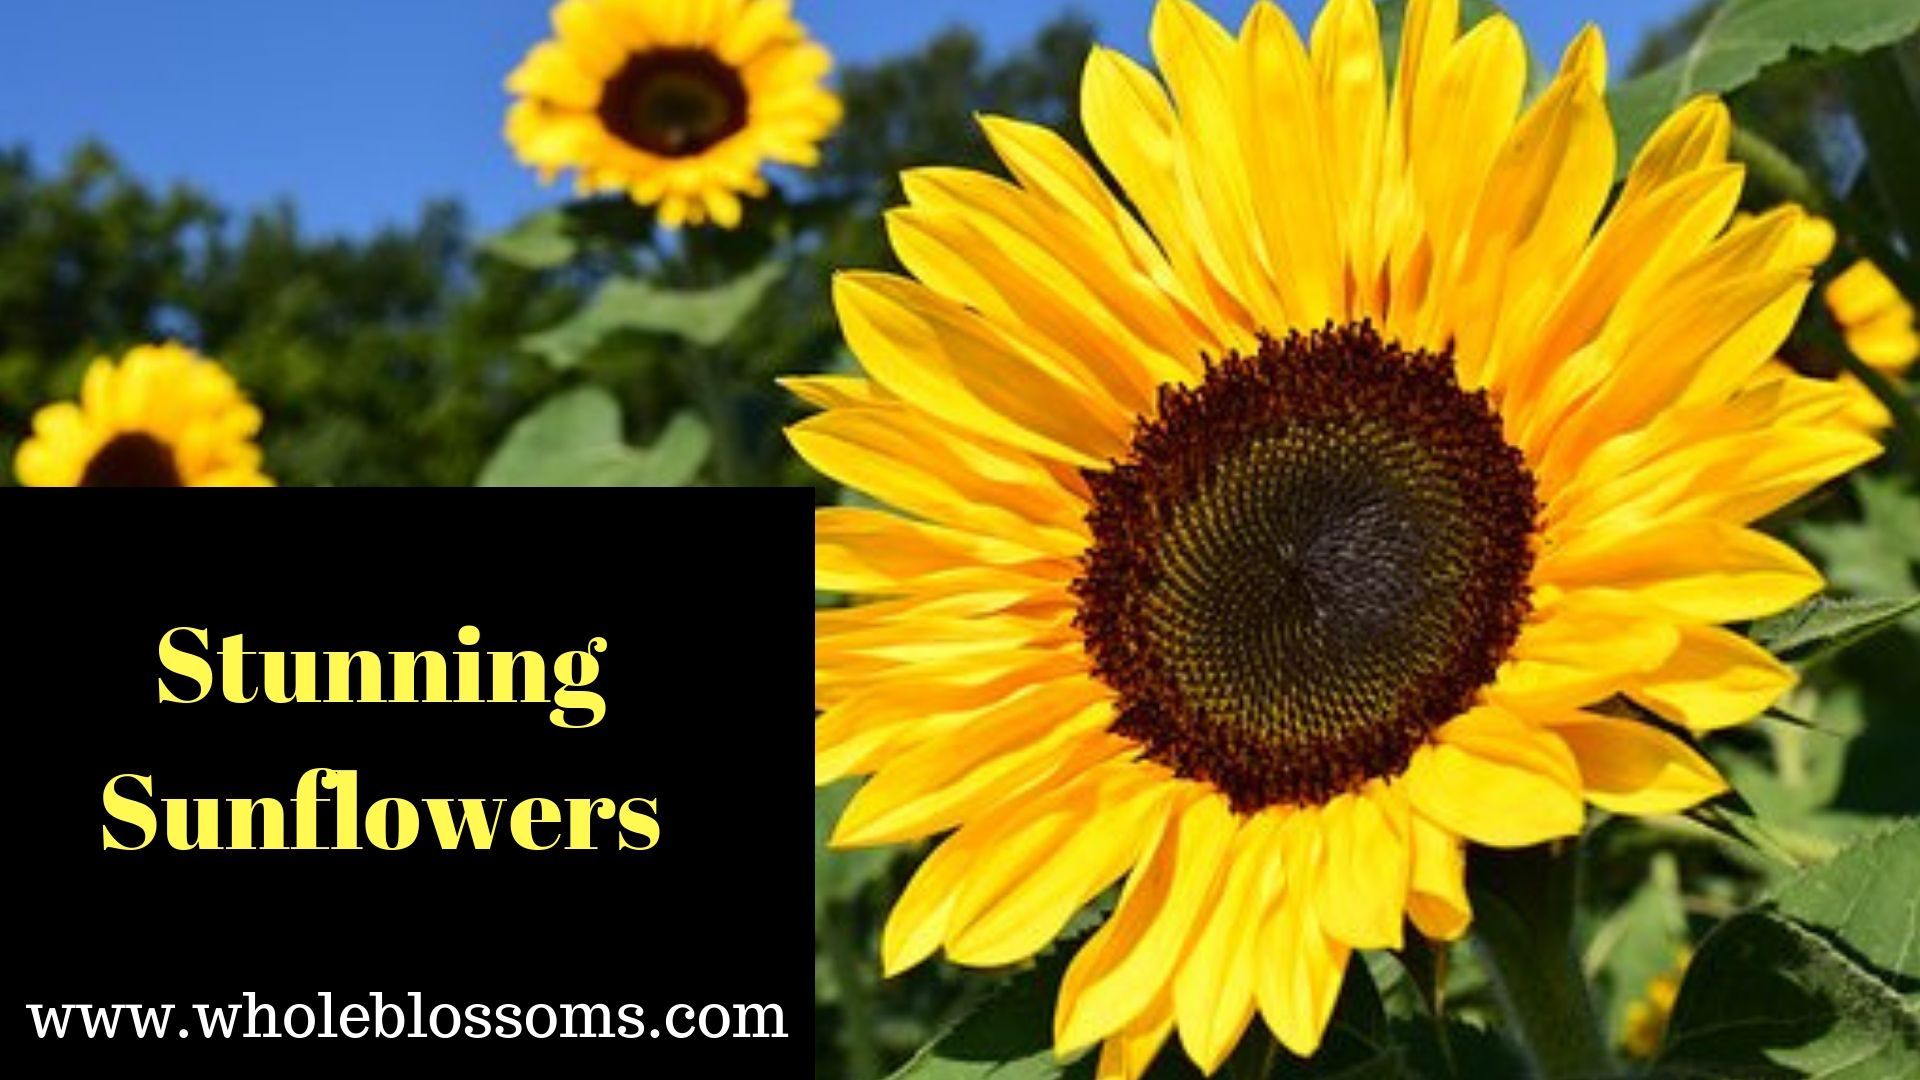 Where to Buy Sunflowers near You at the Bulk